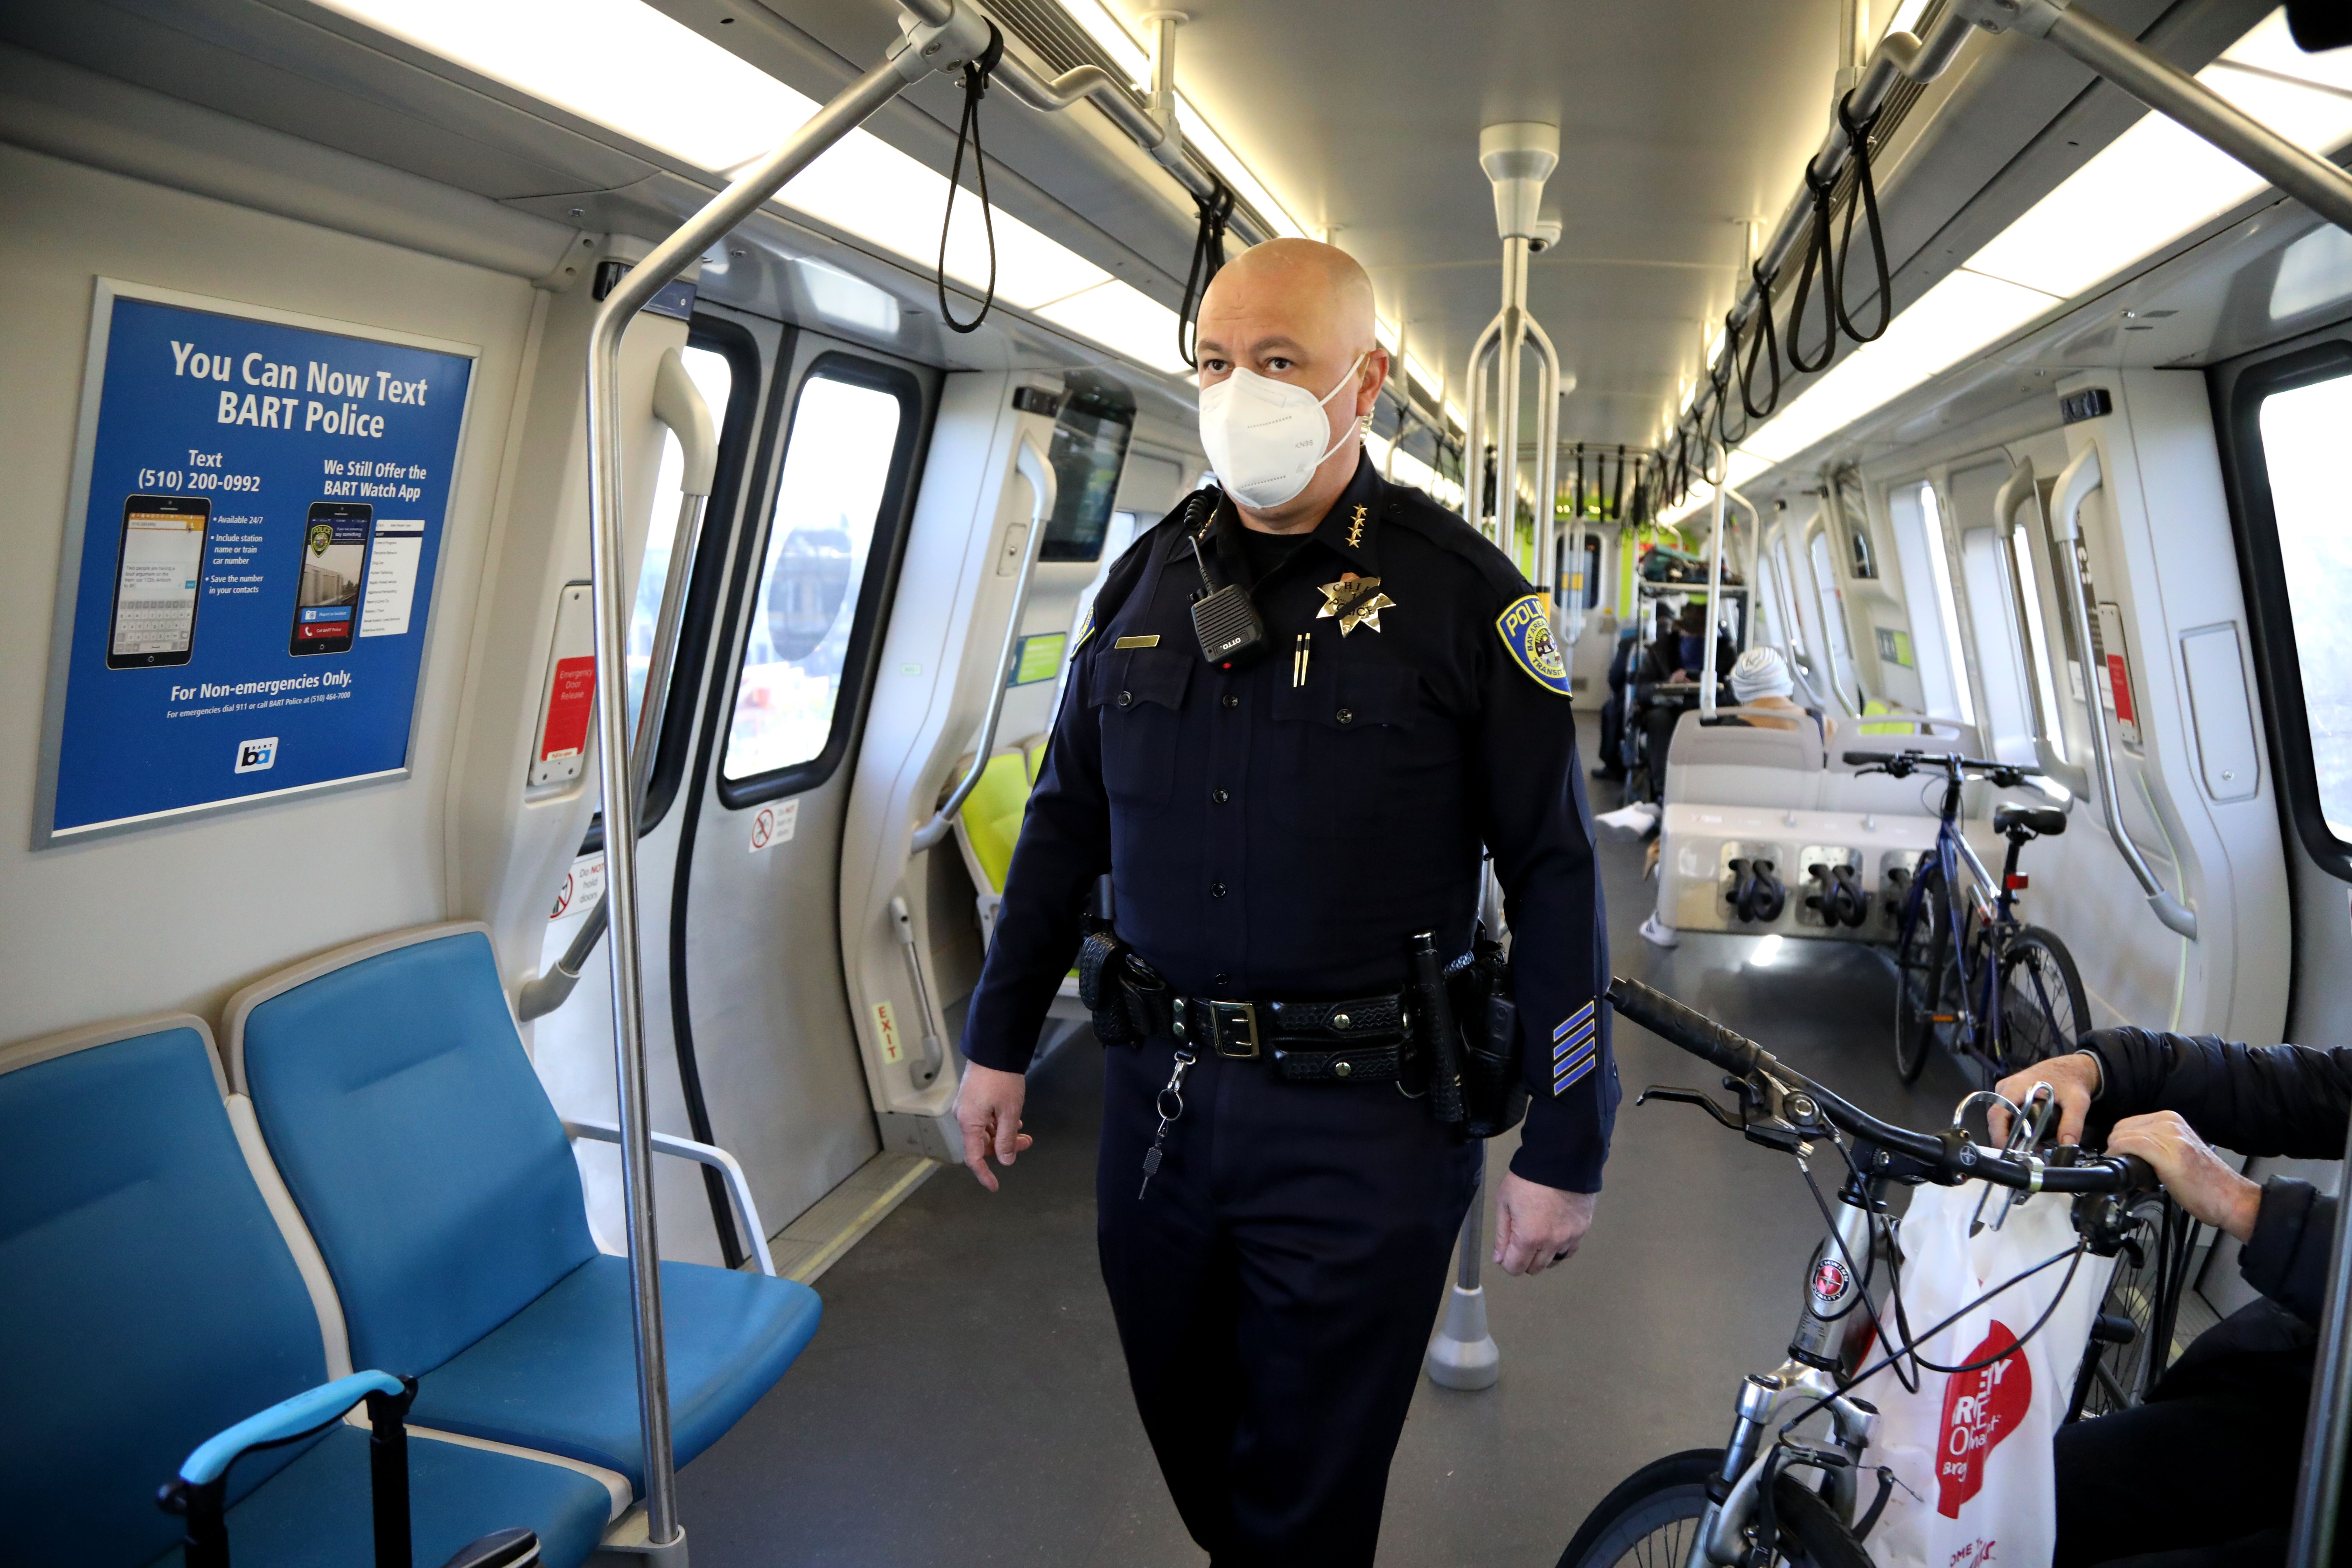 Chief Alvarez regularly walks trains to interact with passengers. Shown here on Feb. 1,  2021; note the poster at left behind bl